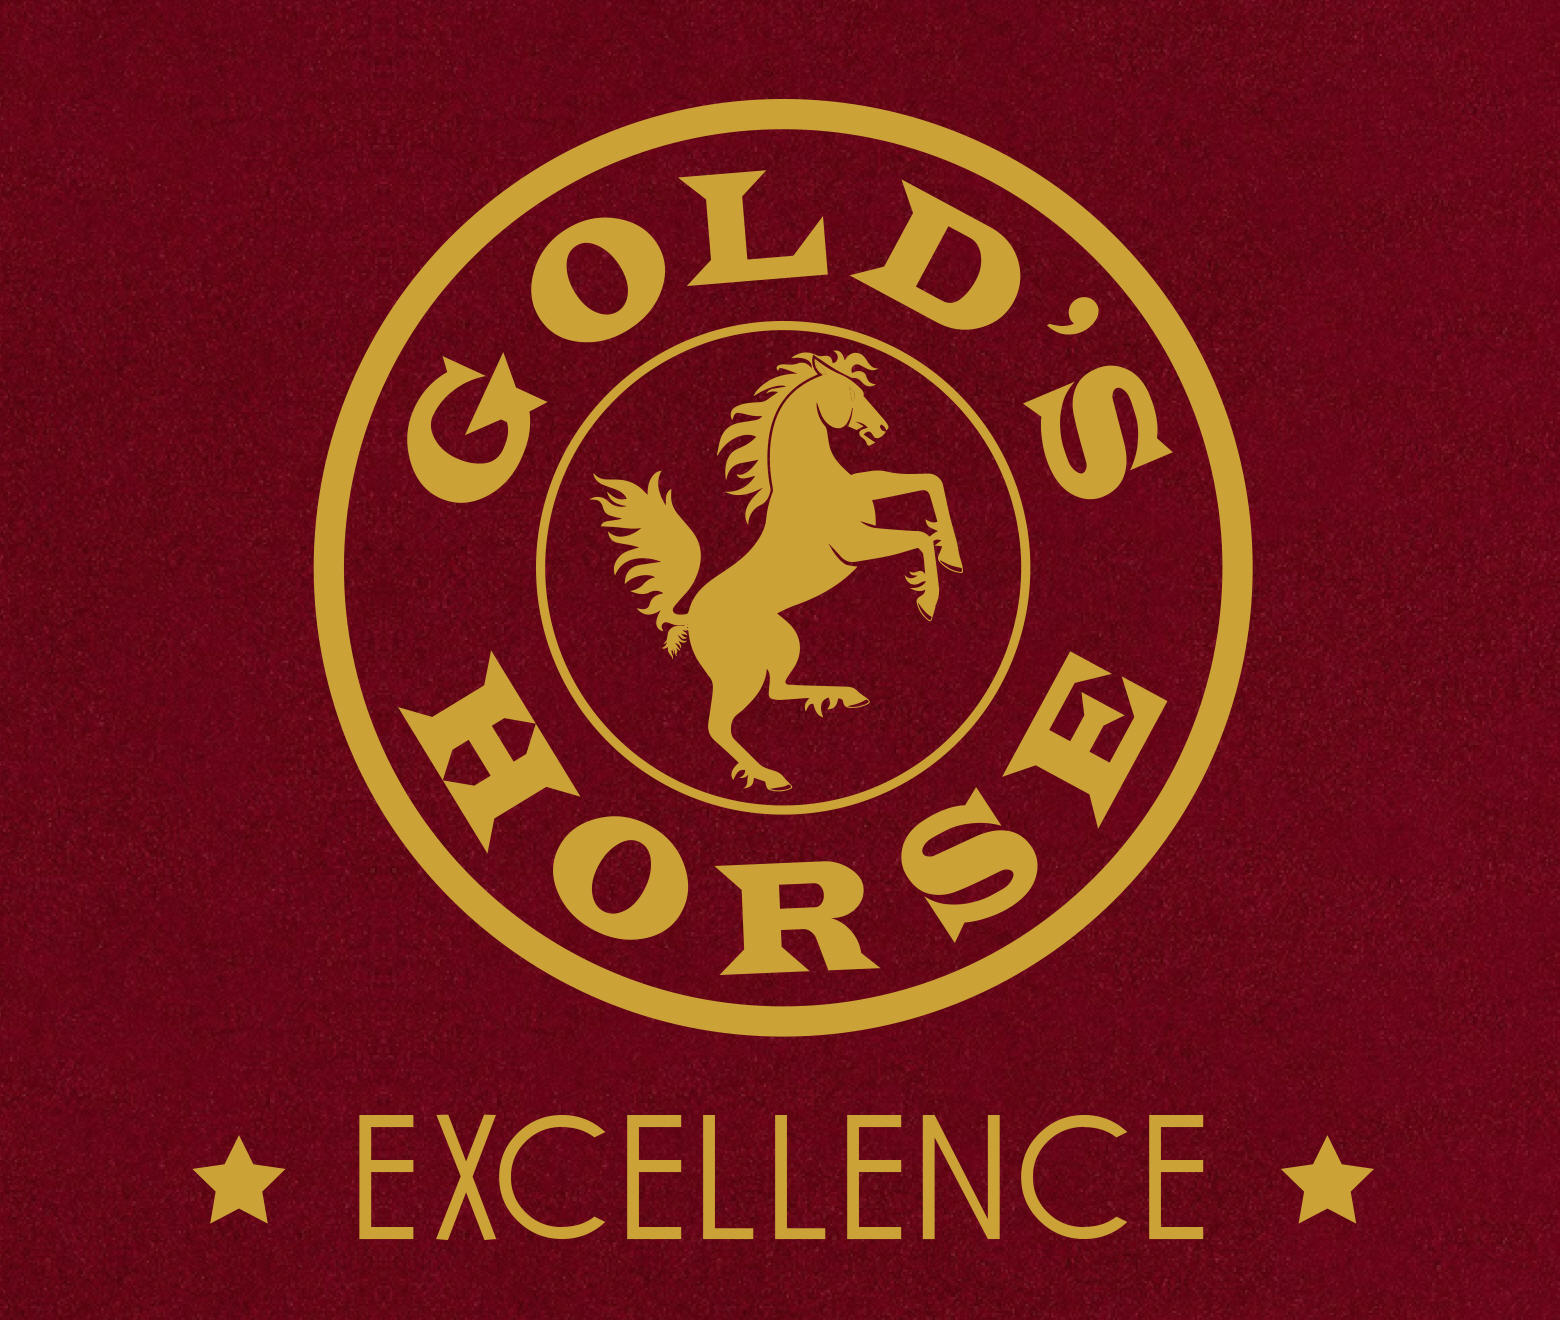 Gold's Horse Excellence - Premium Bio Organic Proteins - Golds Horse Excellence